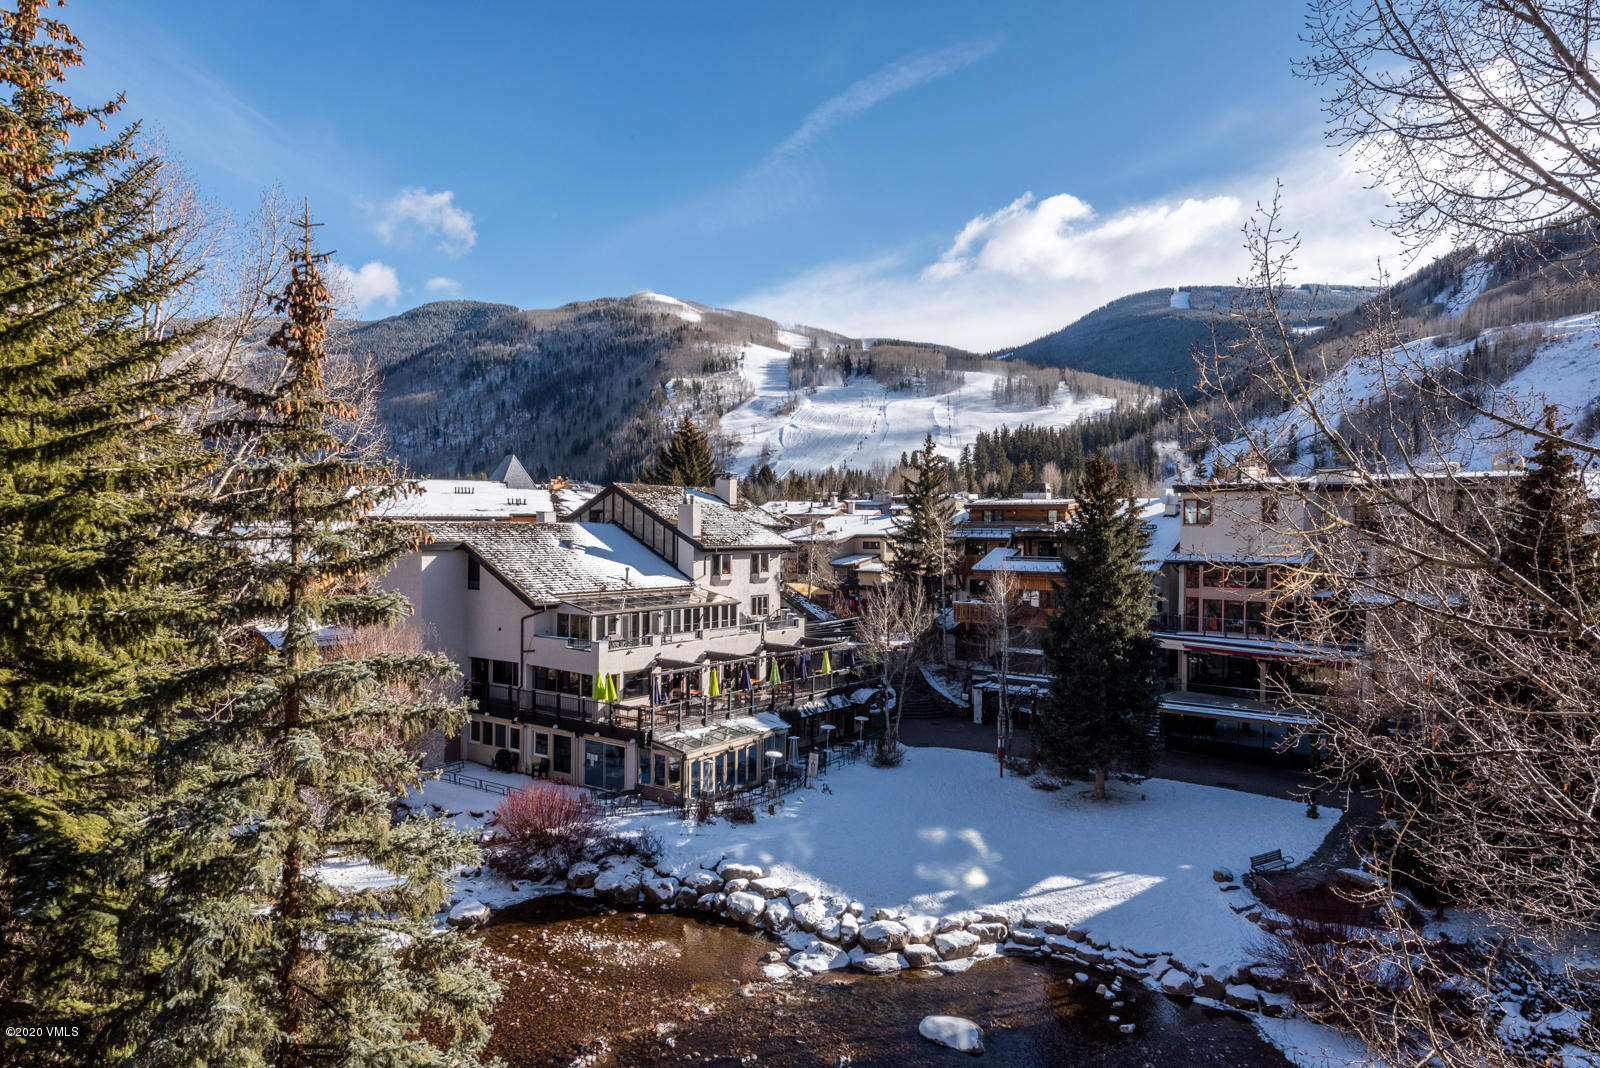 Vail Village luxury 3 Bedroom Condominium, where you can relax on 1 of 2 decks and take in the  spectacular Vail Mountain and Gore Creek views and listen to the peaceful sounds of water flowing by.  Entertaining is easy in the gourmet chef's kitchen open to the living room with gas stone fireplace and spacious dining area with custom storage and lighting.Wake up in the exceptionally large main bedroom with its own gas fireplace and large balcony overlooking the creek and mountains.  Relax after an active day of skiing in the steam shower and jacuzzi tub in the main bath. The custom closets, lighting, humidification, added storage, washer/dryer, beamed ceilings, custom Alder panelling, wide hardwood plank flooring, silk carpeting, silk window coverings define luxury.  Relax in the outdoor hot tub, heated pool, or warm up next to the fire pit after a day on the mountain.Look no further for the condo on the creek with amazing mountain views and 2 garage assigned spaces.  Manager on site.  Village Center, a very special condominium in the center of Vail to be your home in Vail.